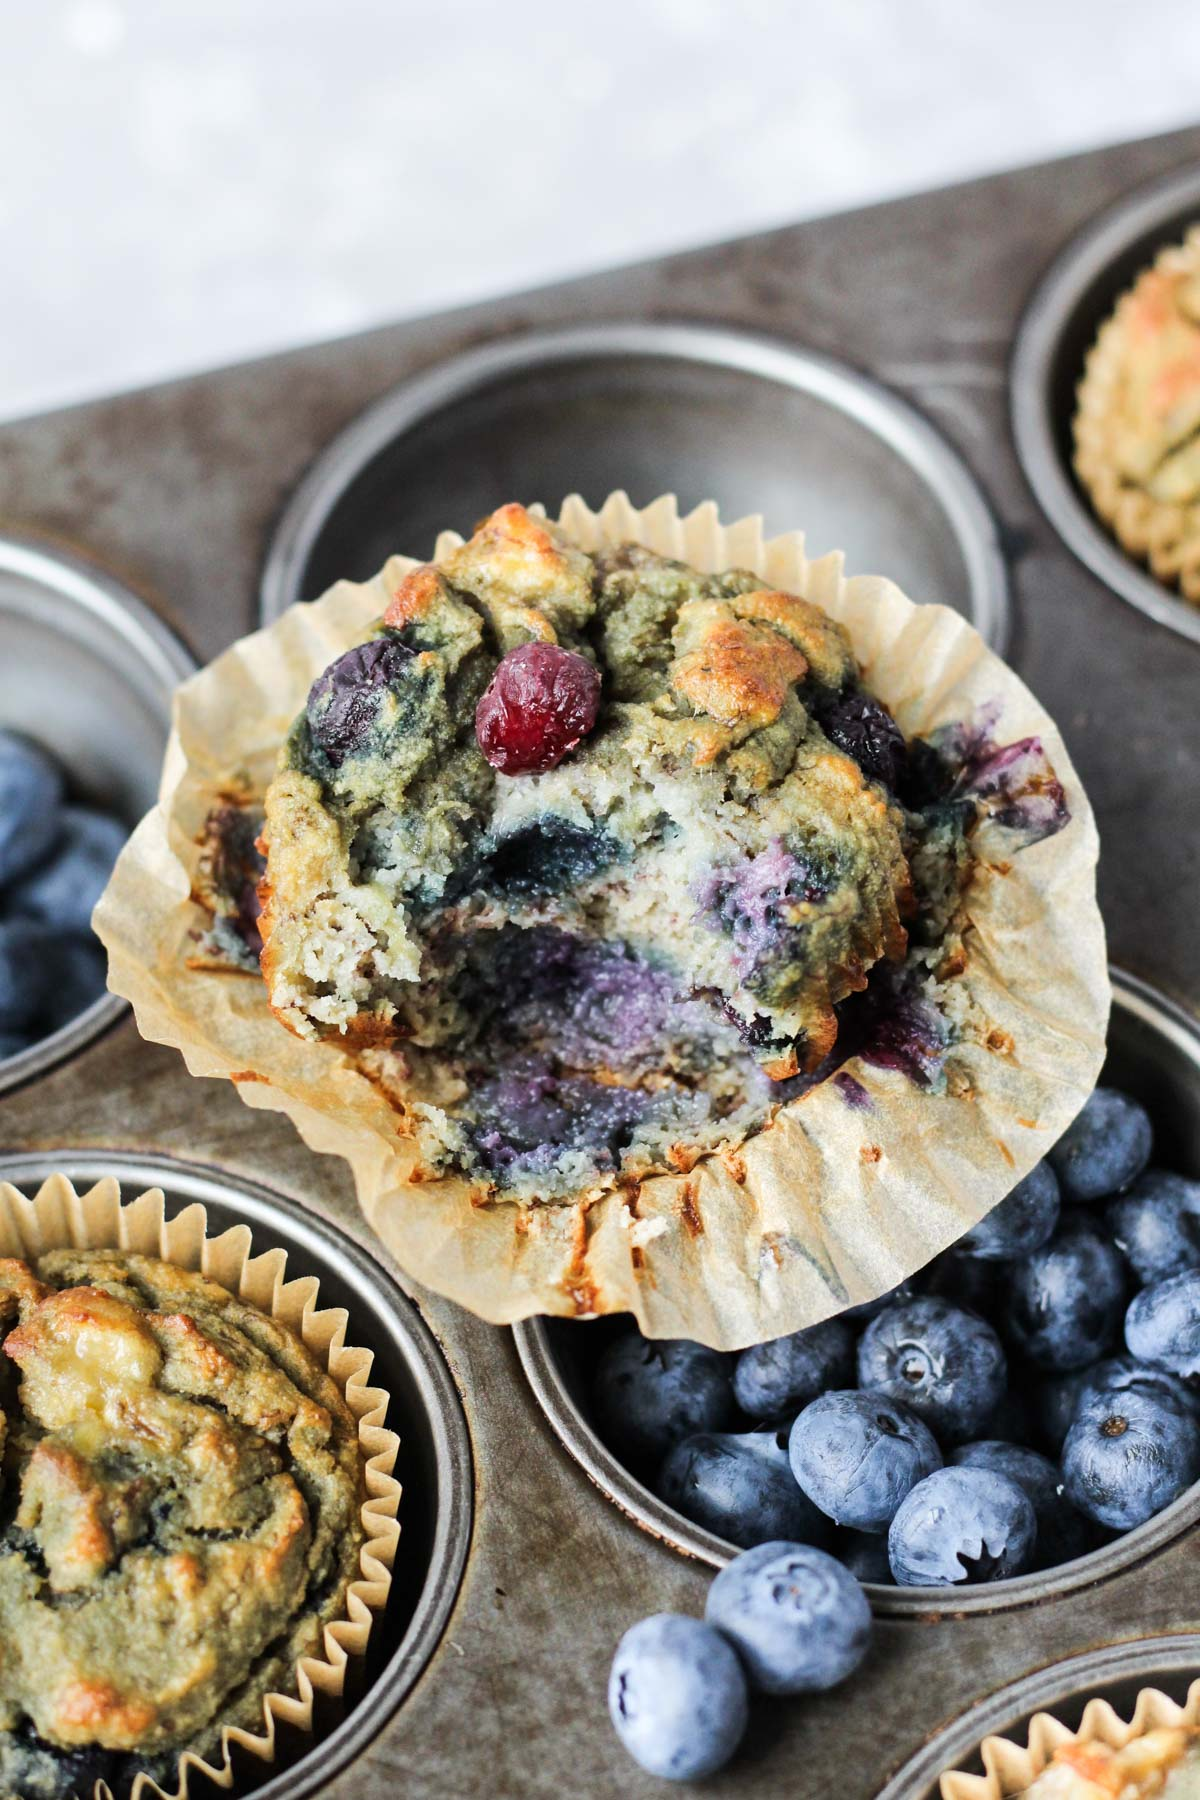 Close up shot of blueberry muffin with a bite taken out.